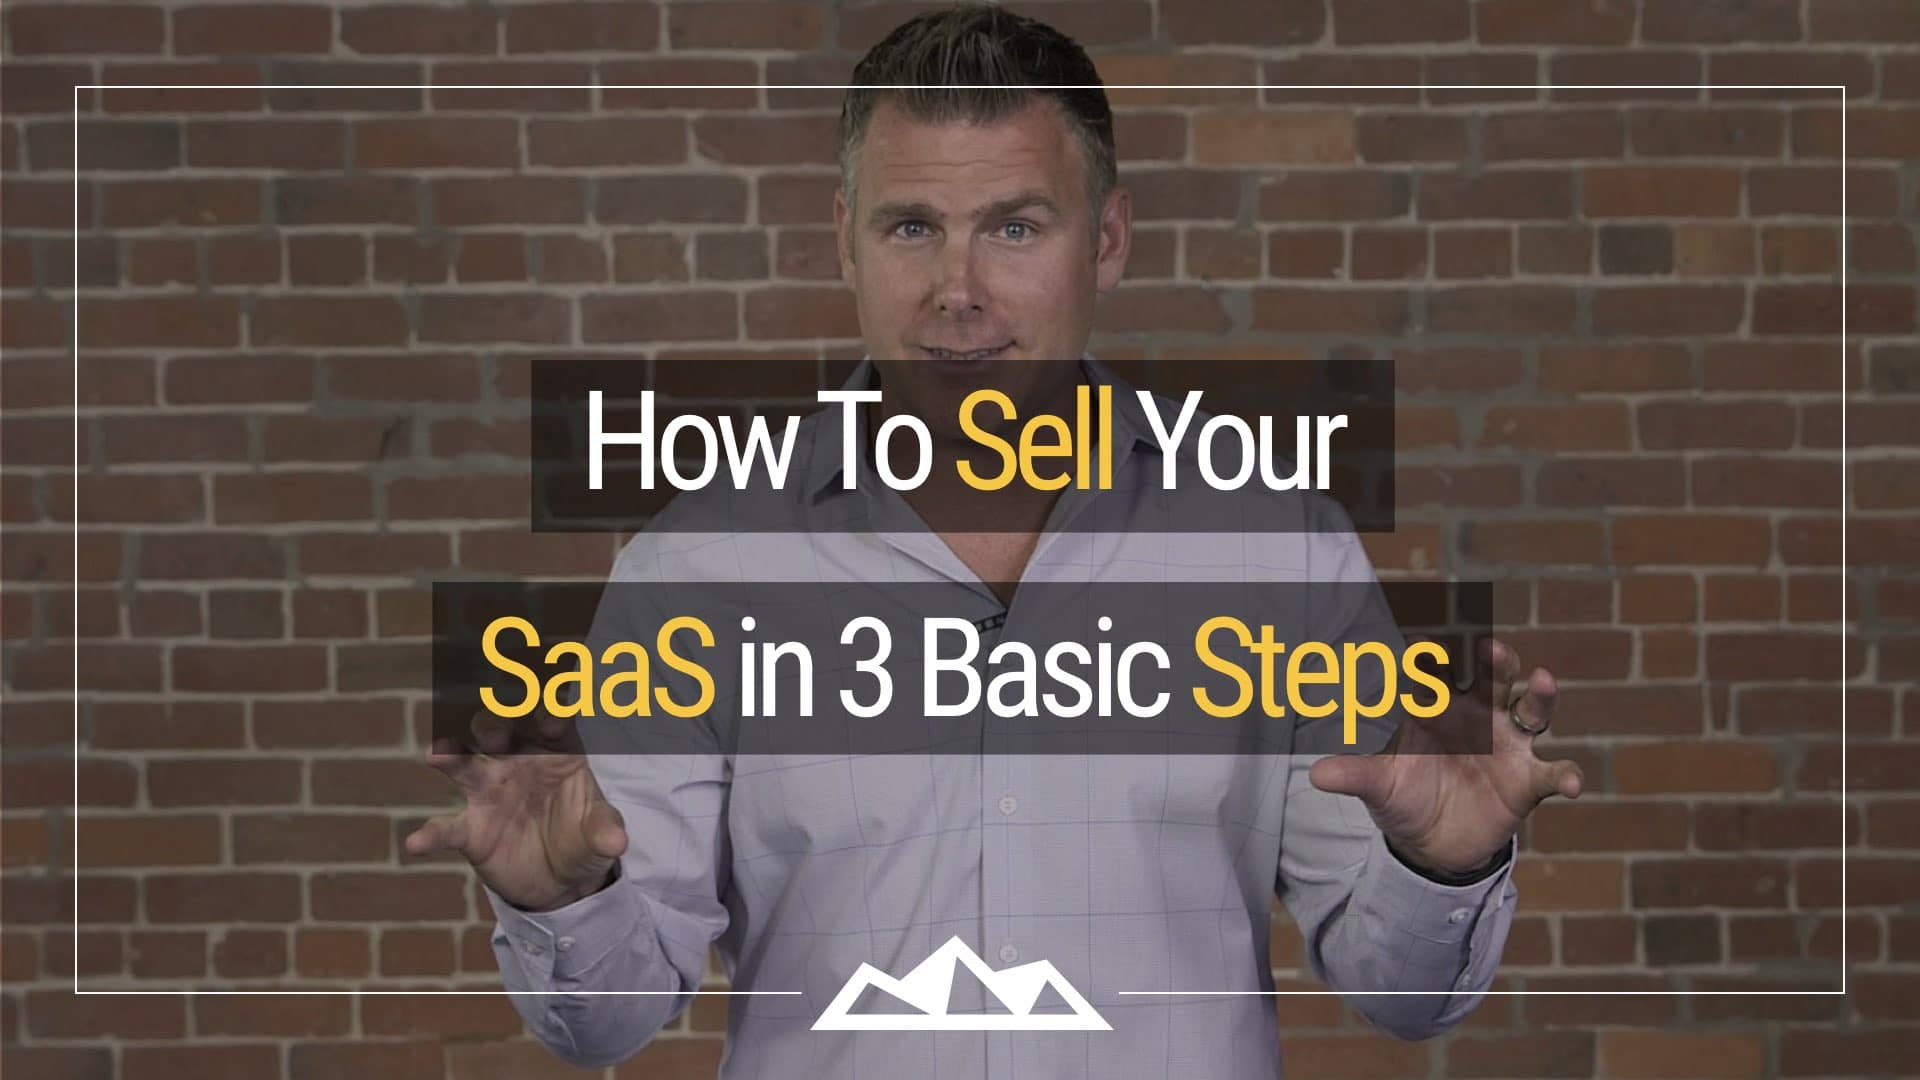 3 Basic Steps To Sell Anything